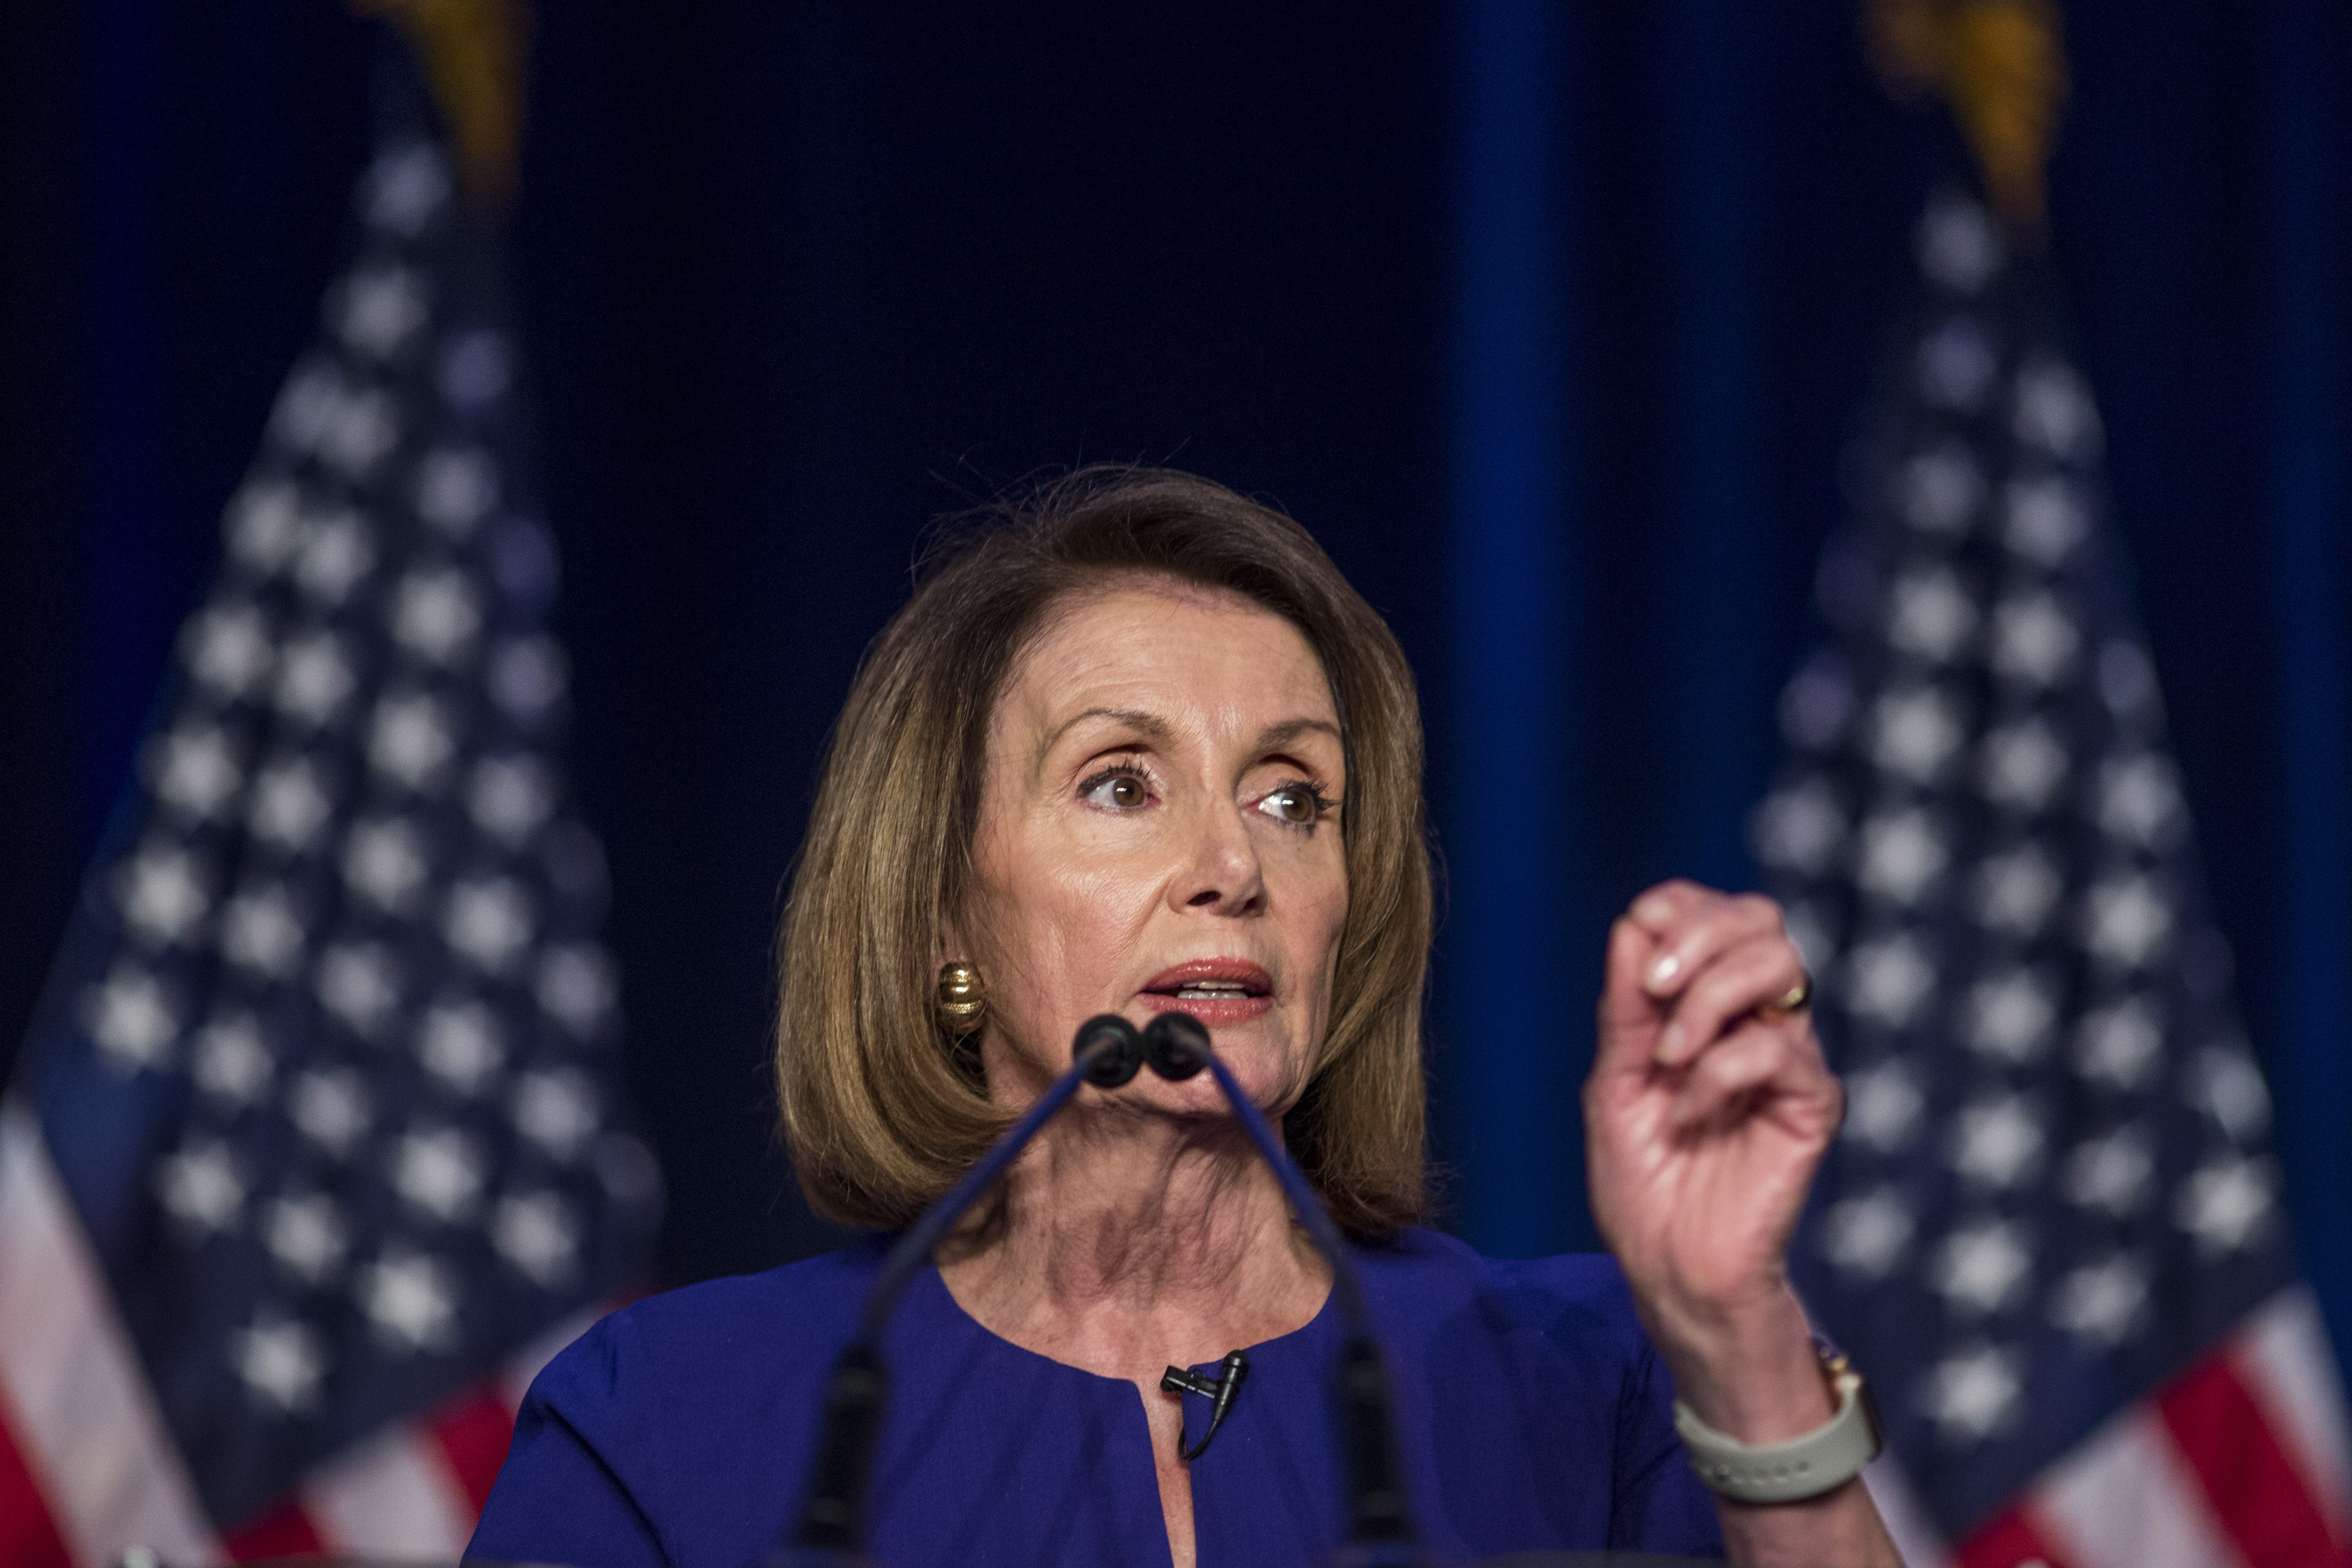 pics Nancy Pelosi celebrates House win, promises bipartisanship